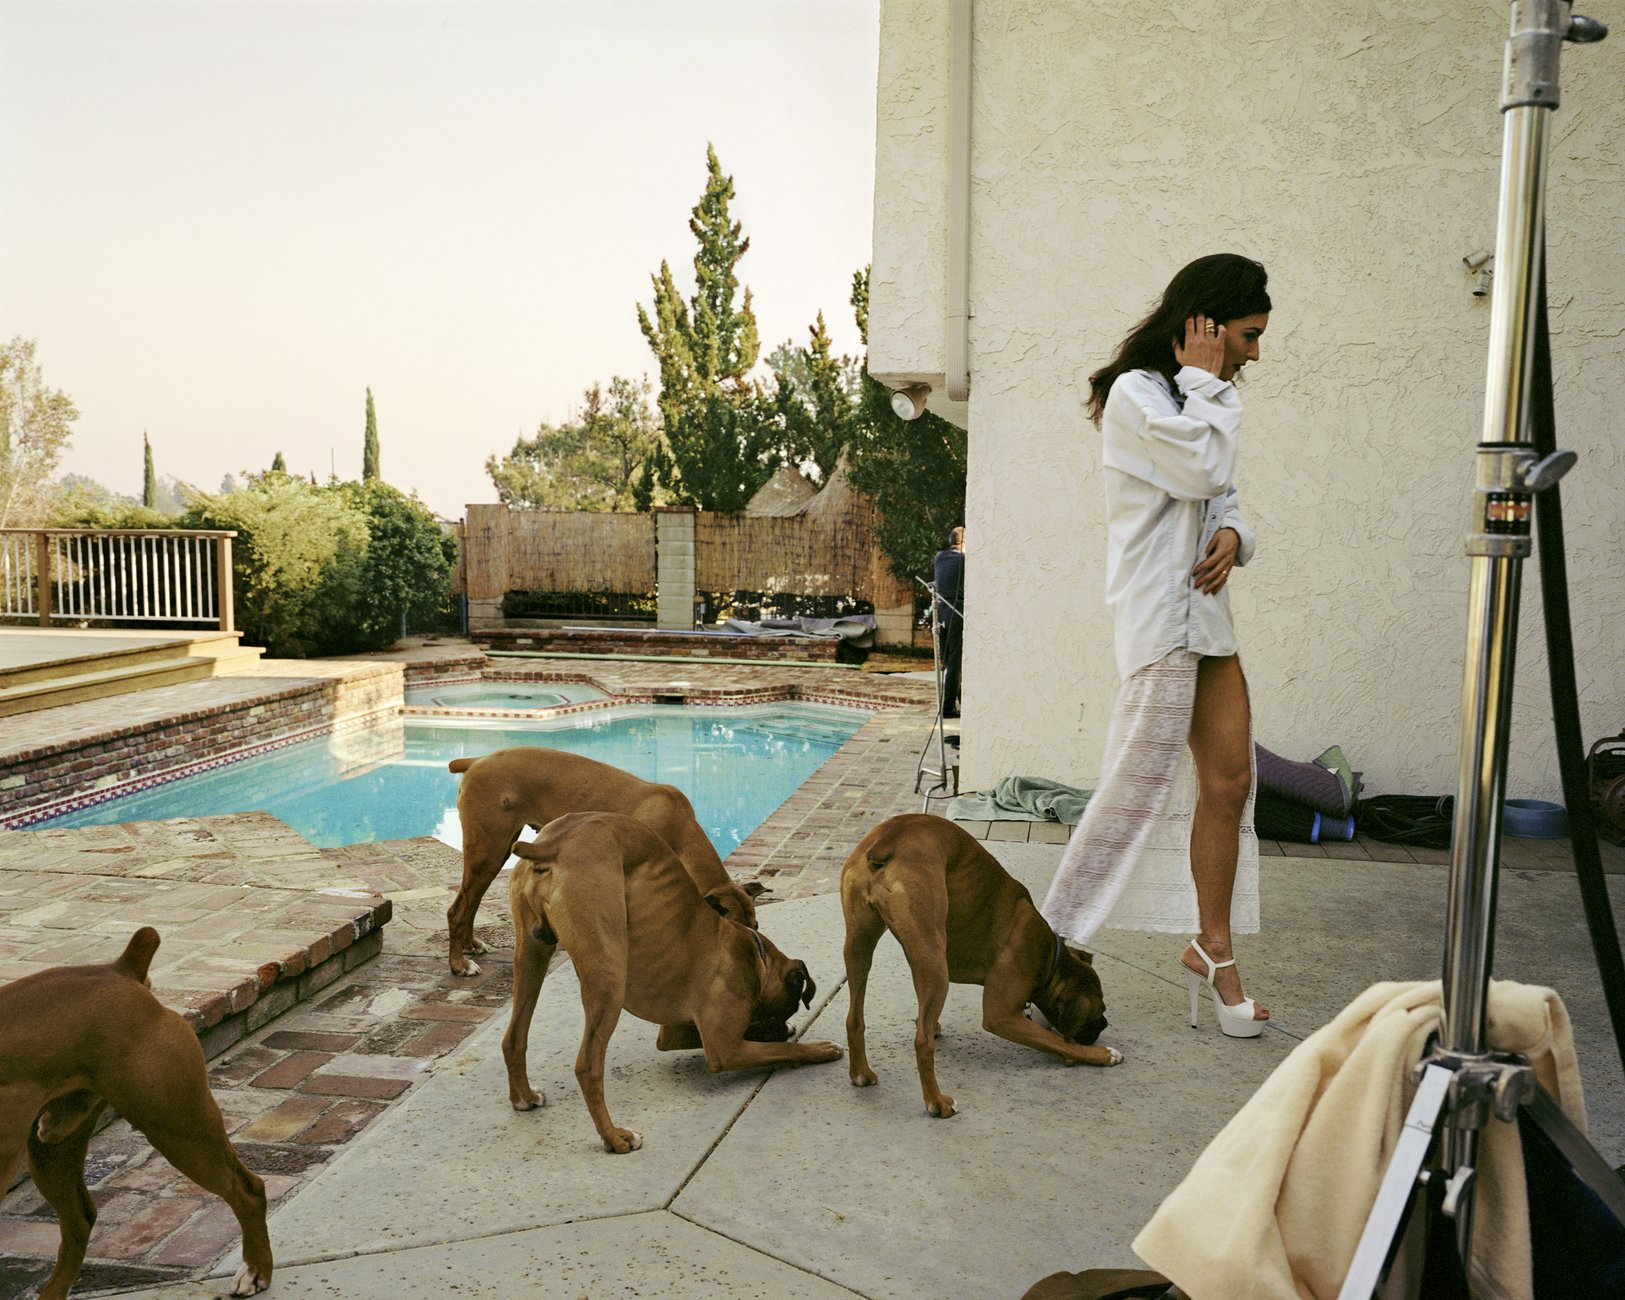 Artwork image, Larry Sultan, Boxers, Mission Hills